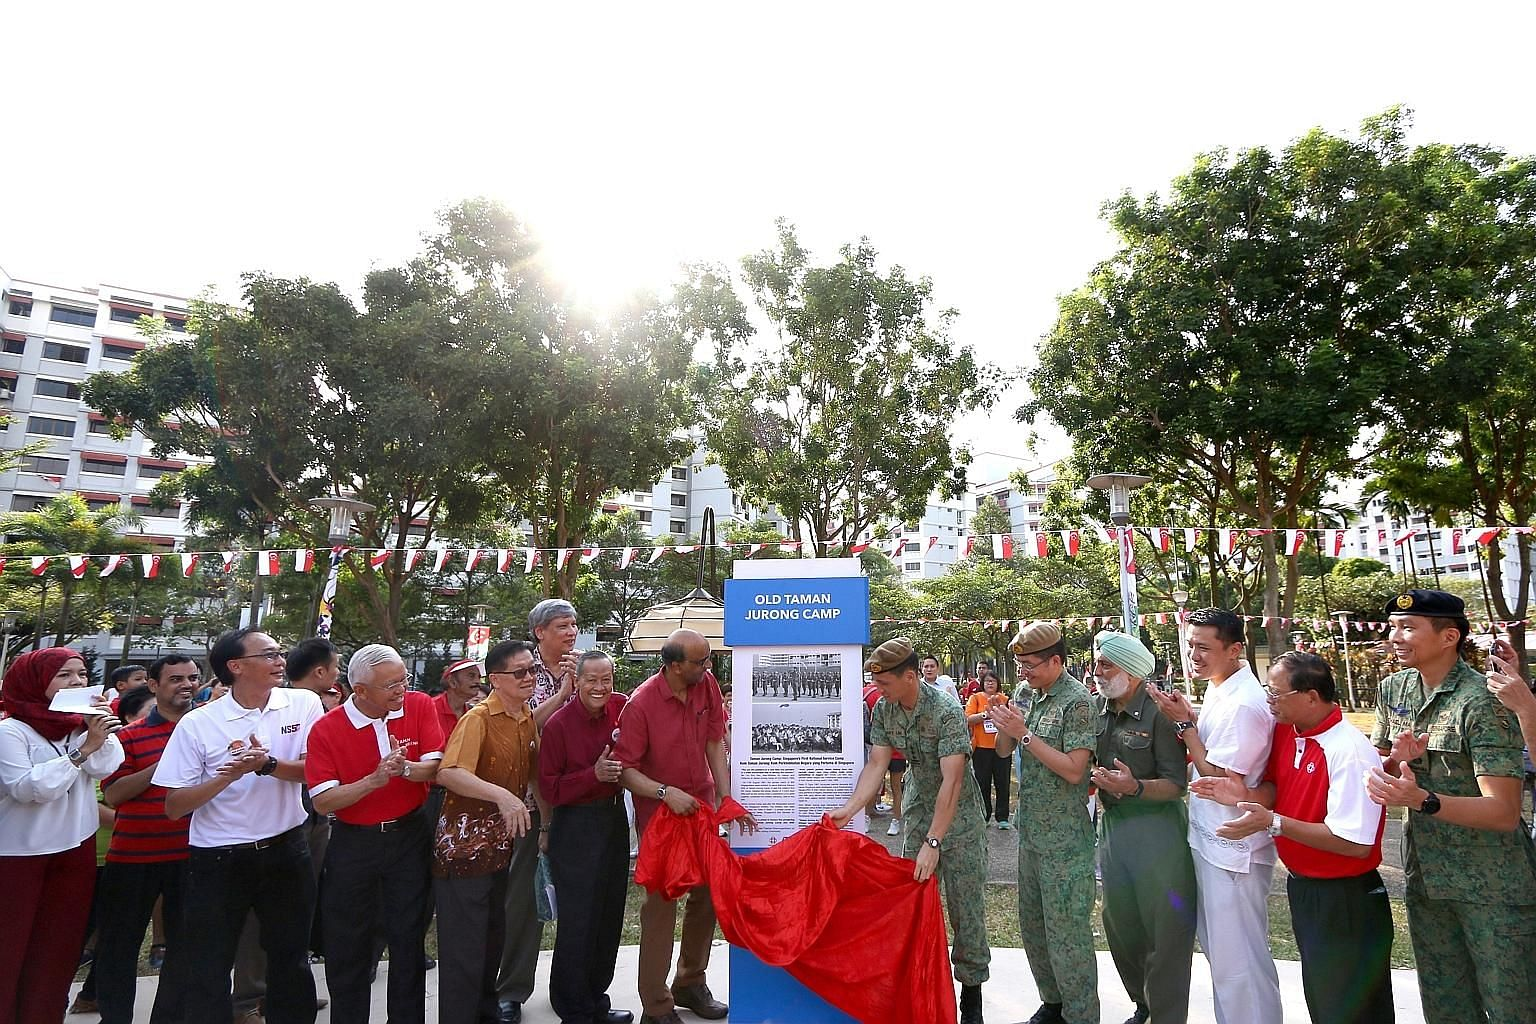 Deputy Prime Minister Tharman Shanmugaratnam unveiling the marker yesterday during the Taman Jurong National Day Observance Ceremony. He said the marker would be a way to remember the stories of duty, sacrifice and friendship that the pioneer NSmen h